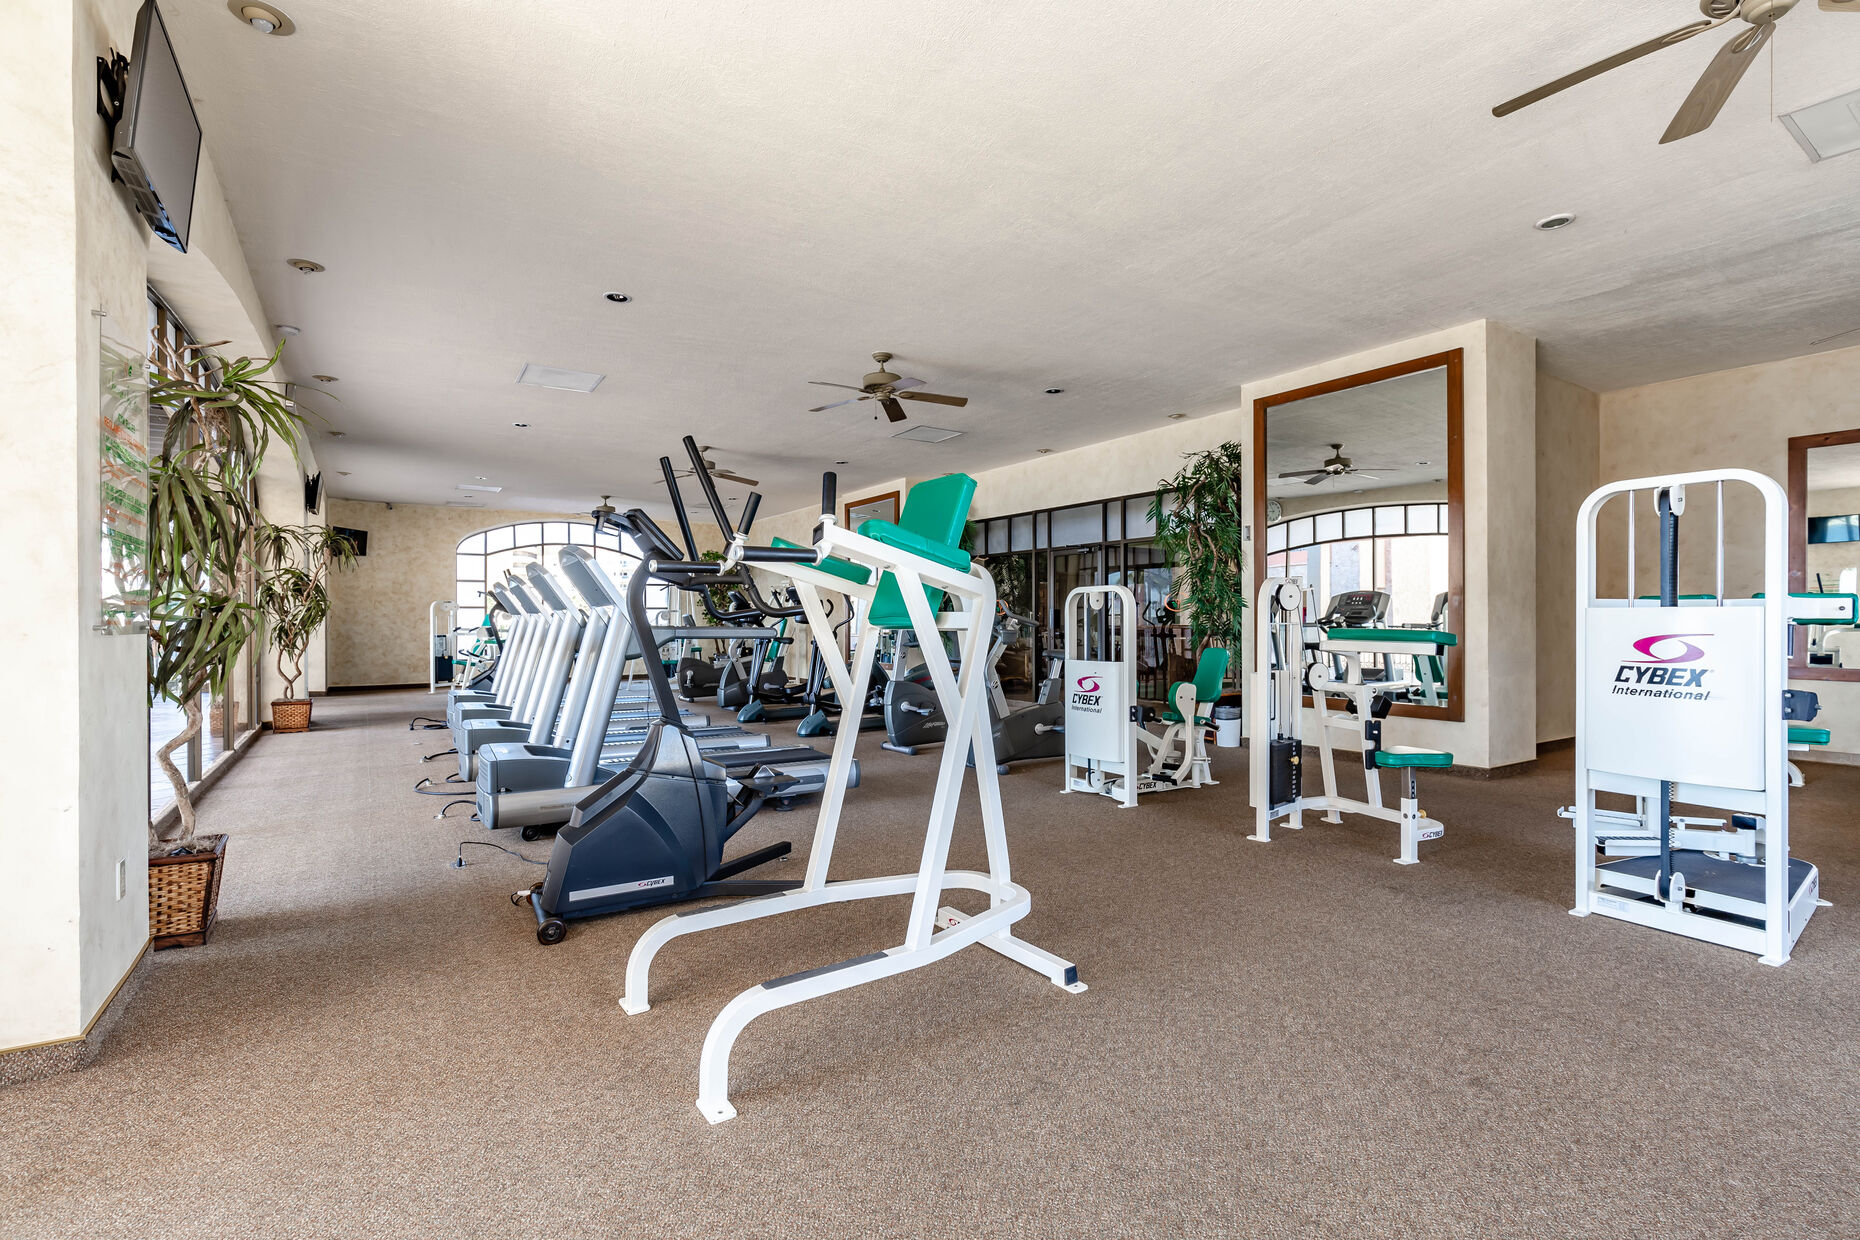 Gym located on the 2nd floor